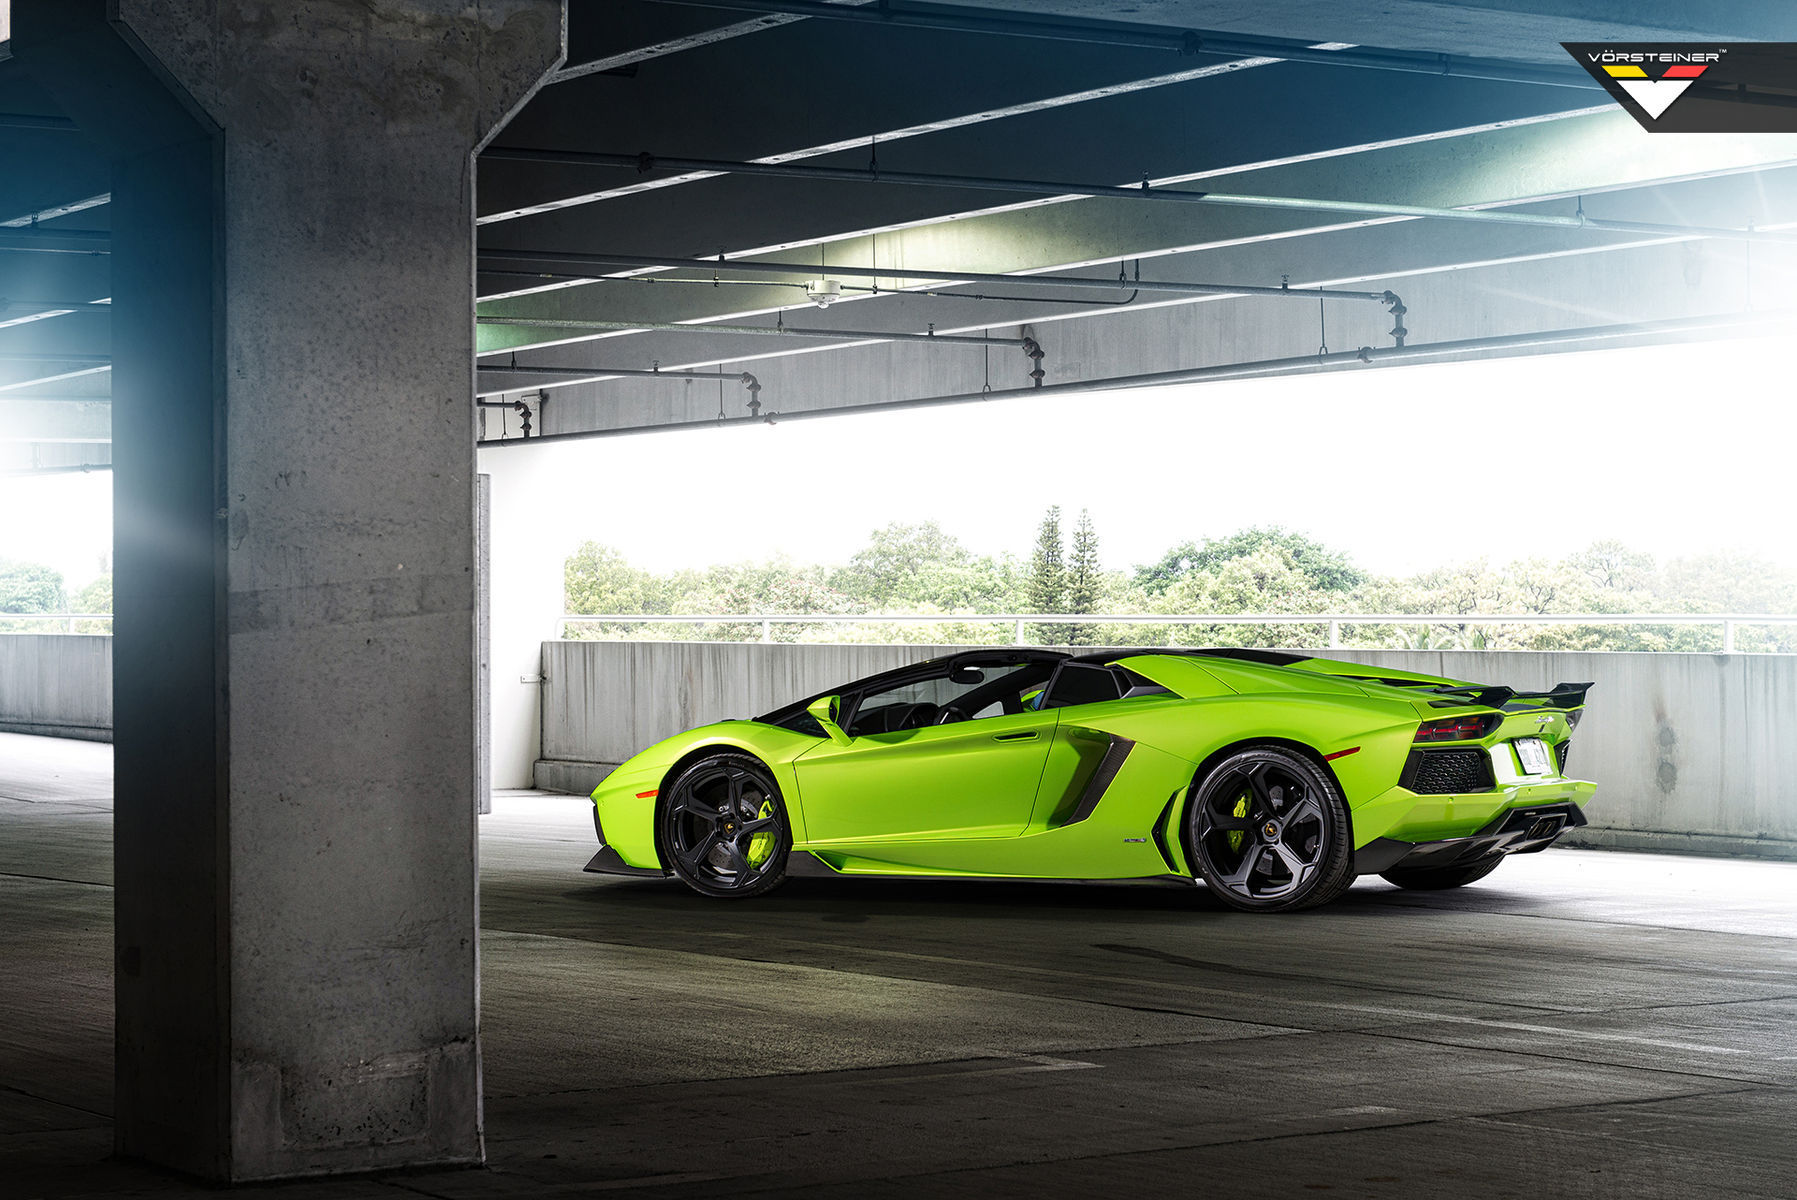 2013 Lamborghini Aventador | Vorsteiner AVENTADOR-V for the Coupe / Roadster